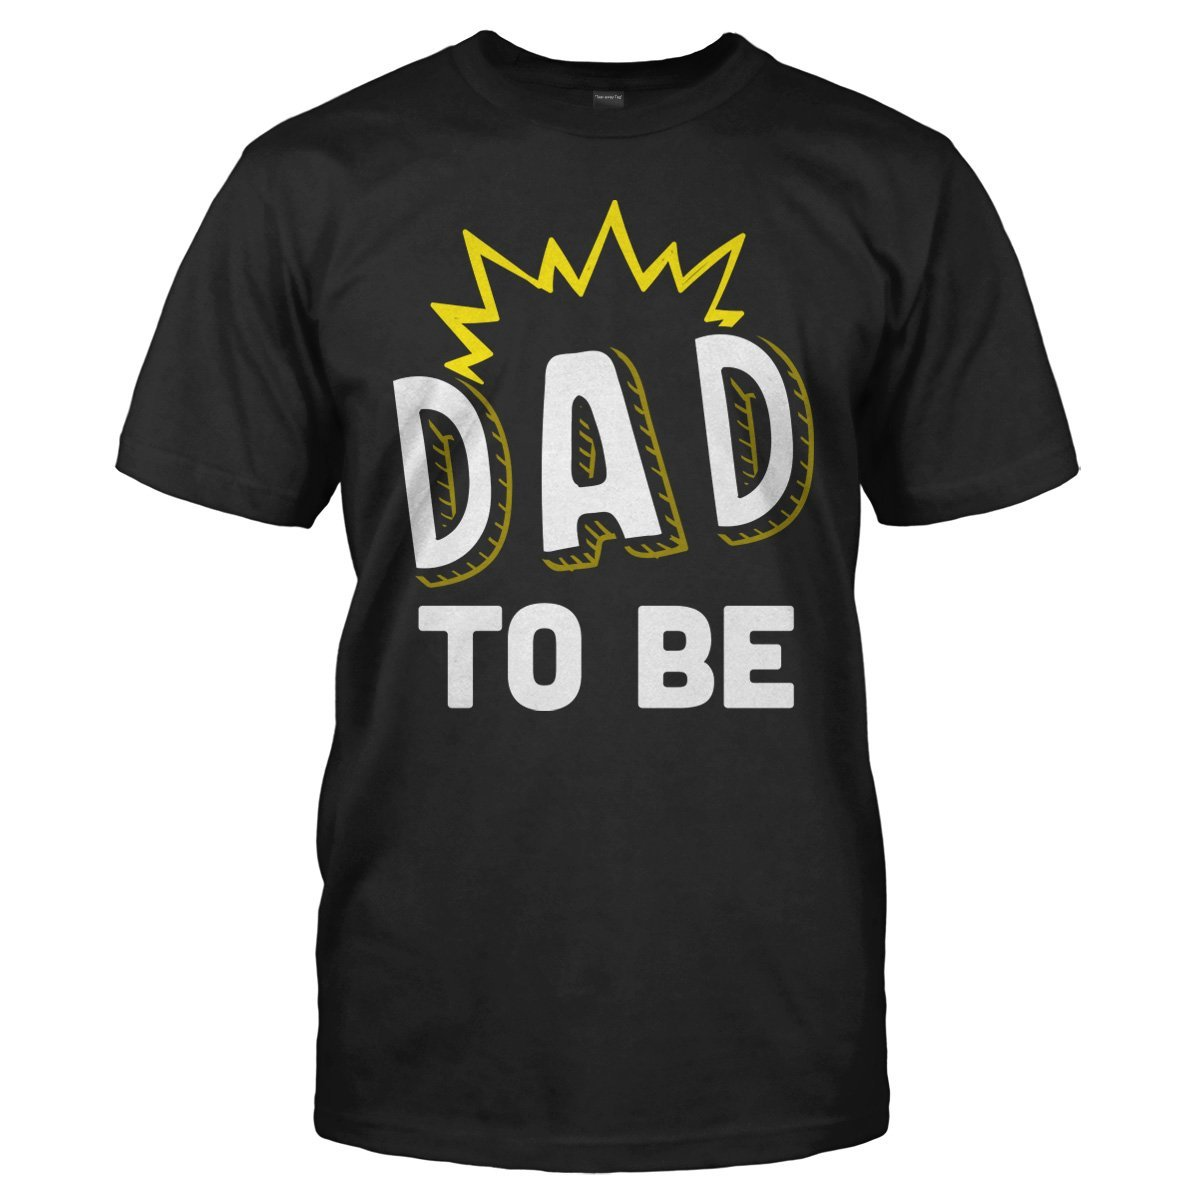 Dad To Be - T Shirt